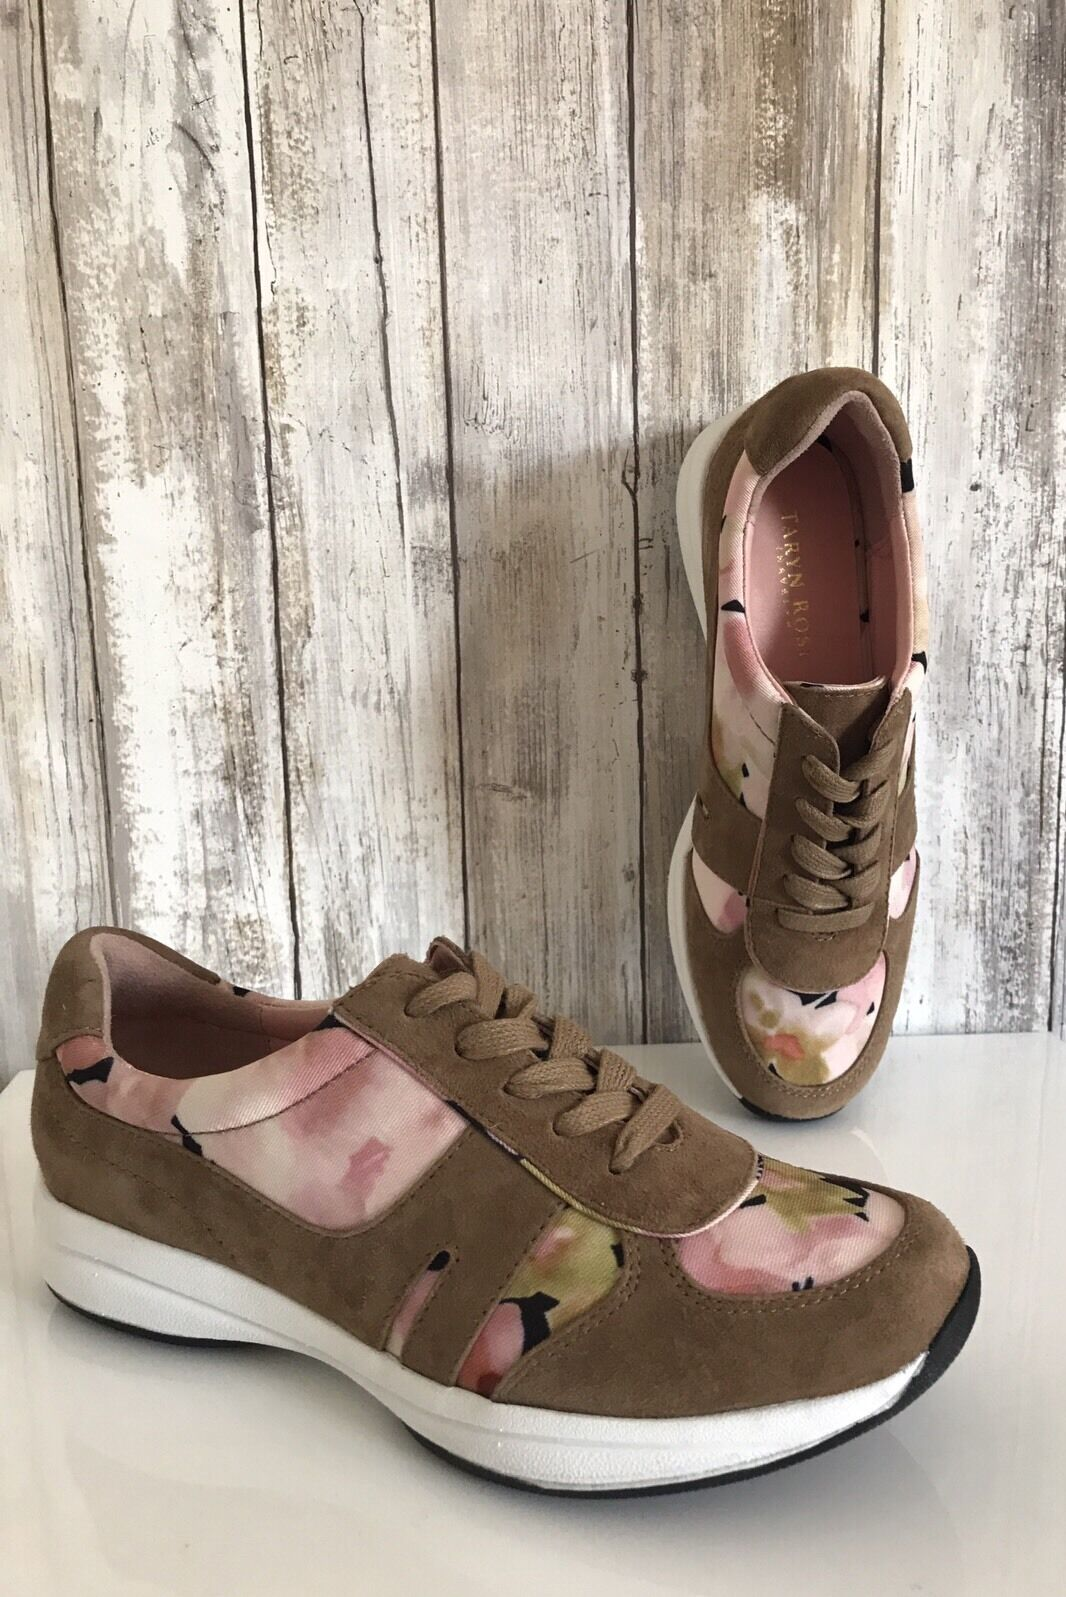 Taryn pink Arvella Beige Suede Fashion Sneaker Blossom Floral Lace Up 6 RARE